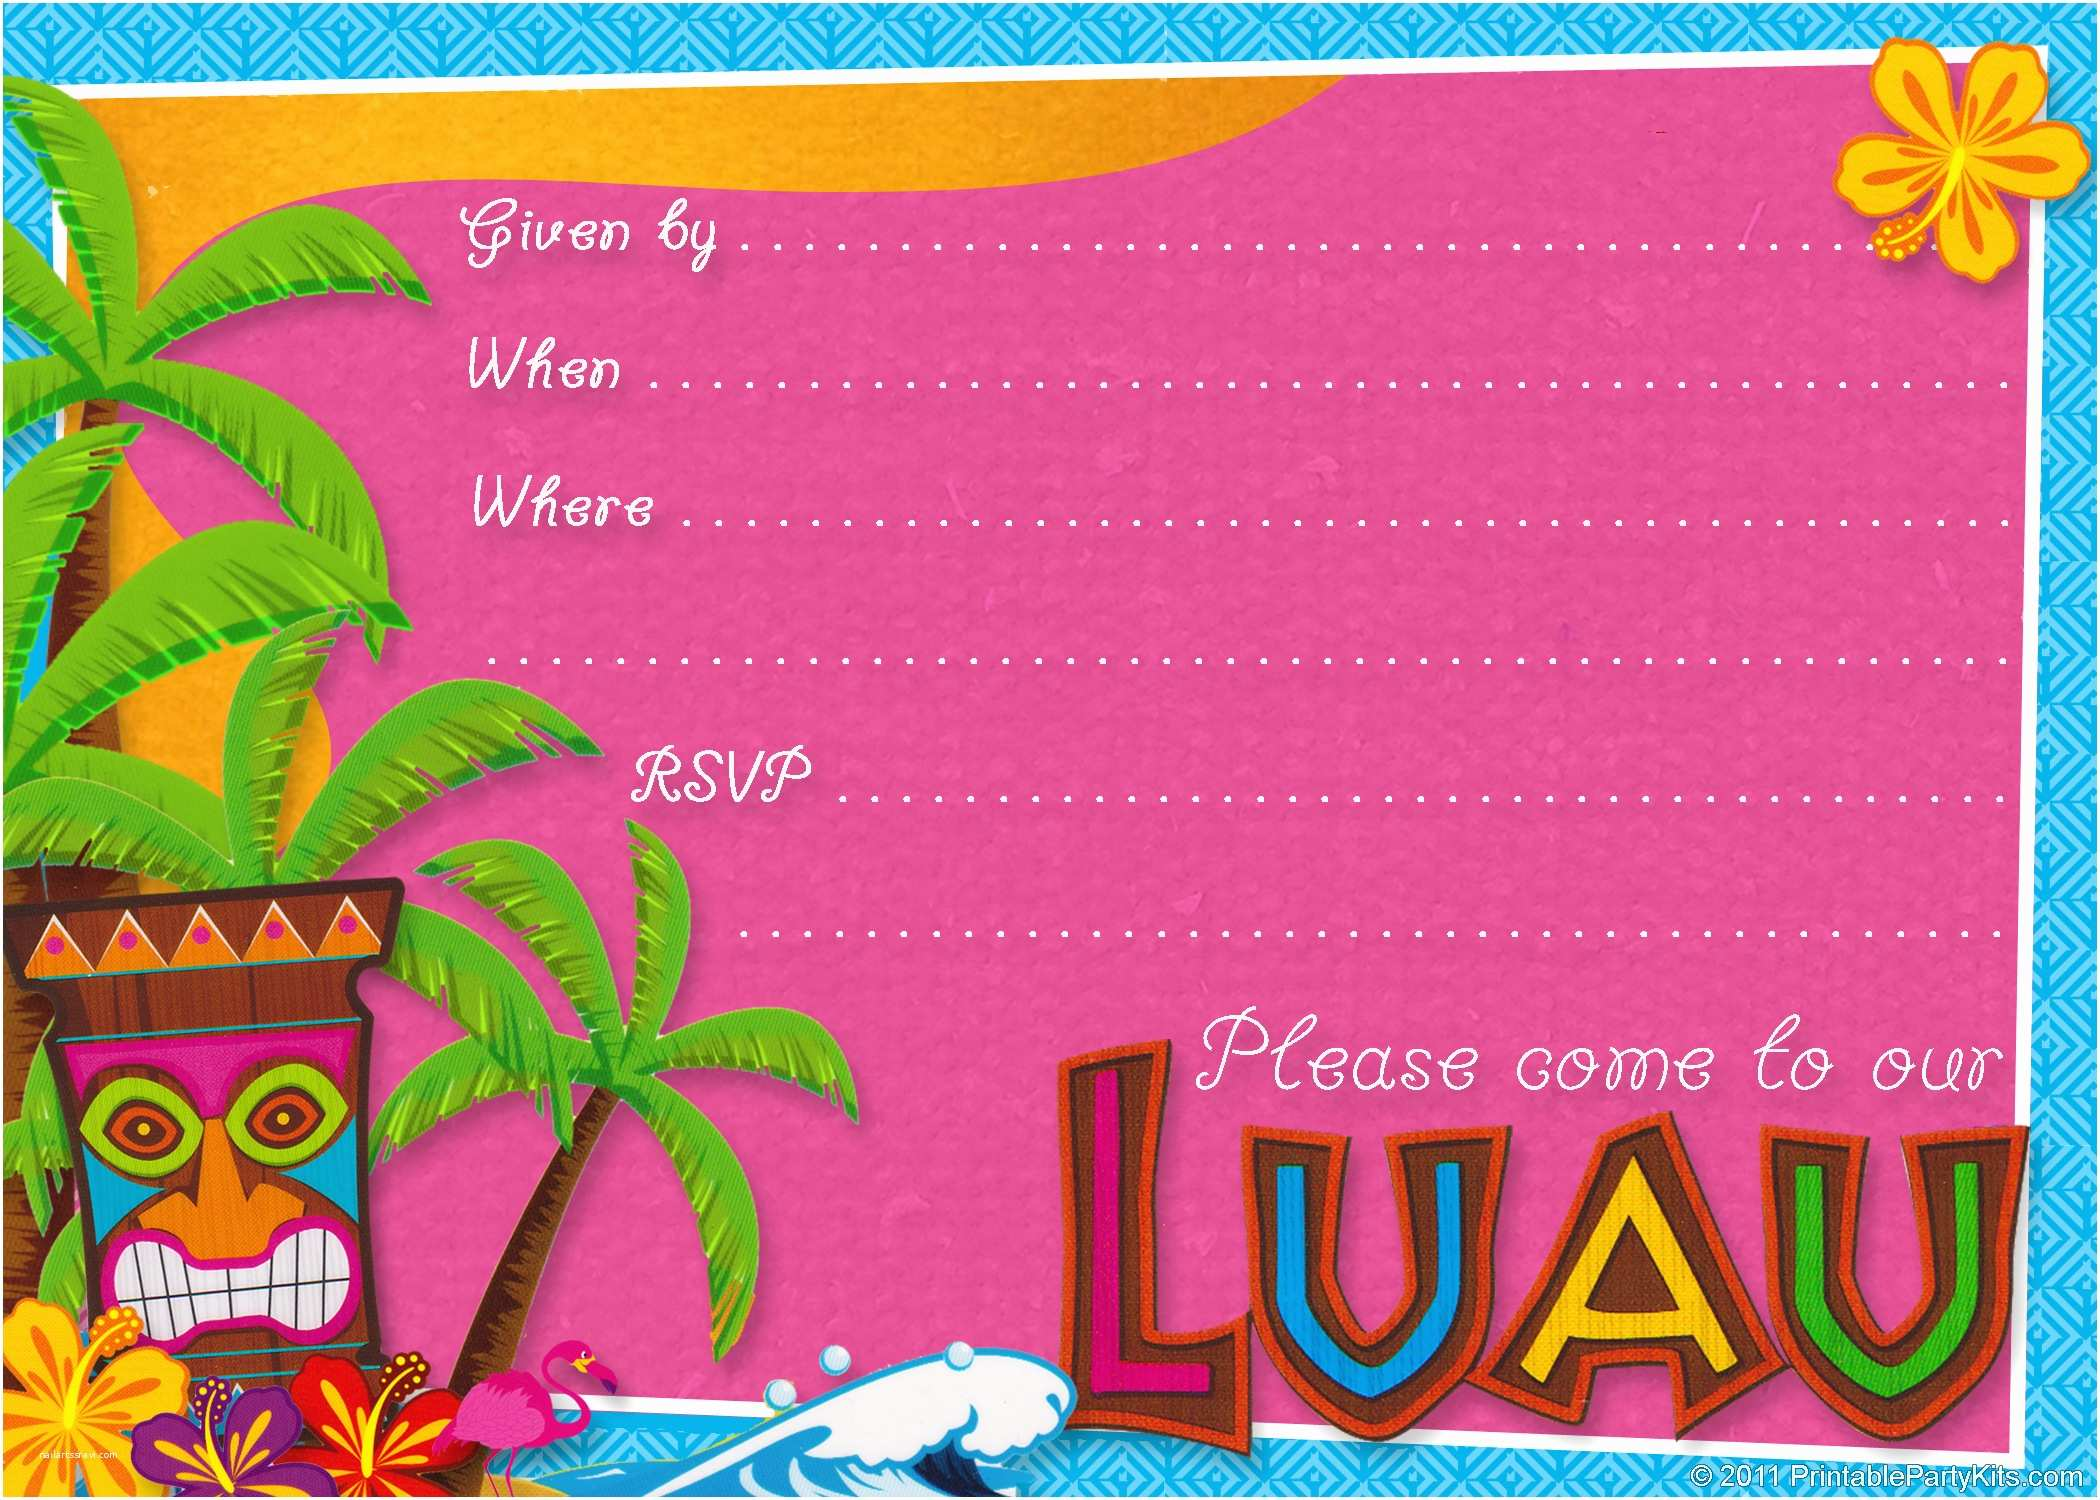 Birthday Invitations with Picture 20 Luau Birthday Invitations Designs